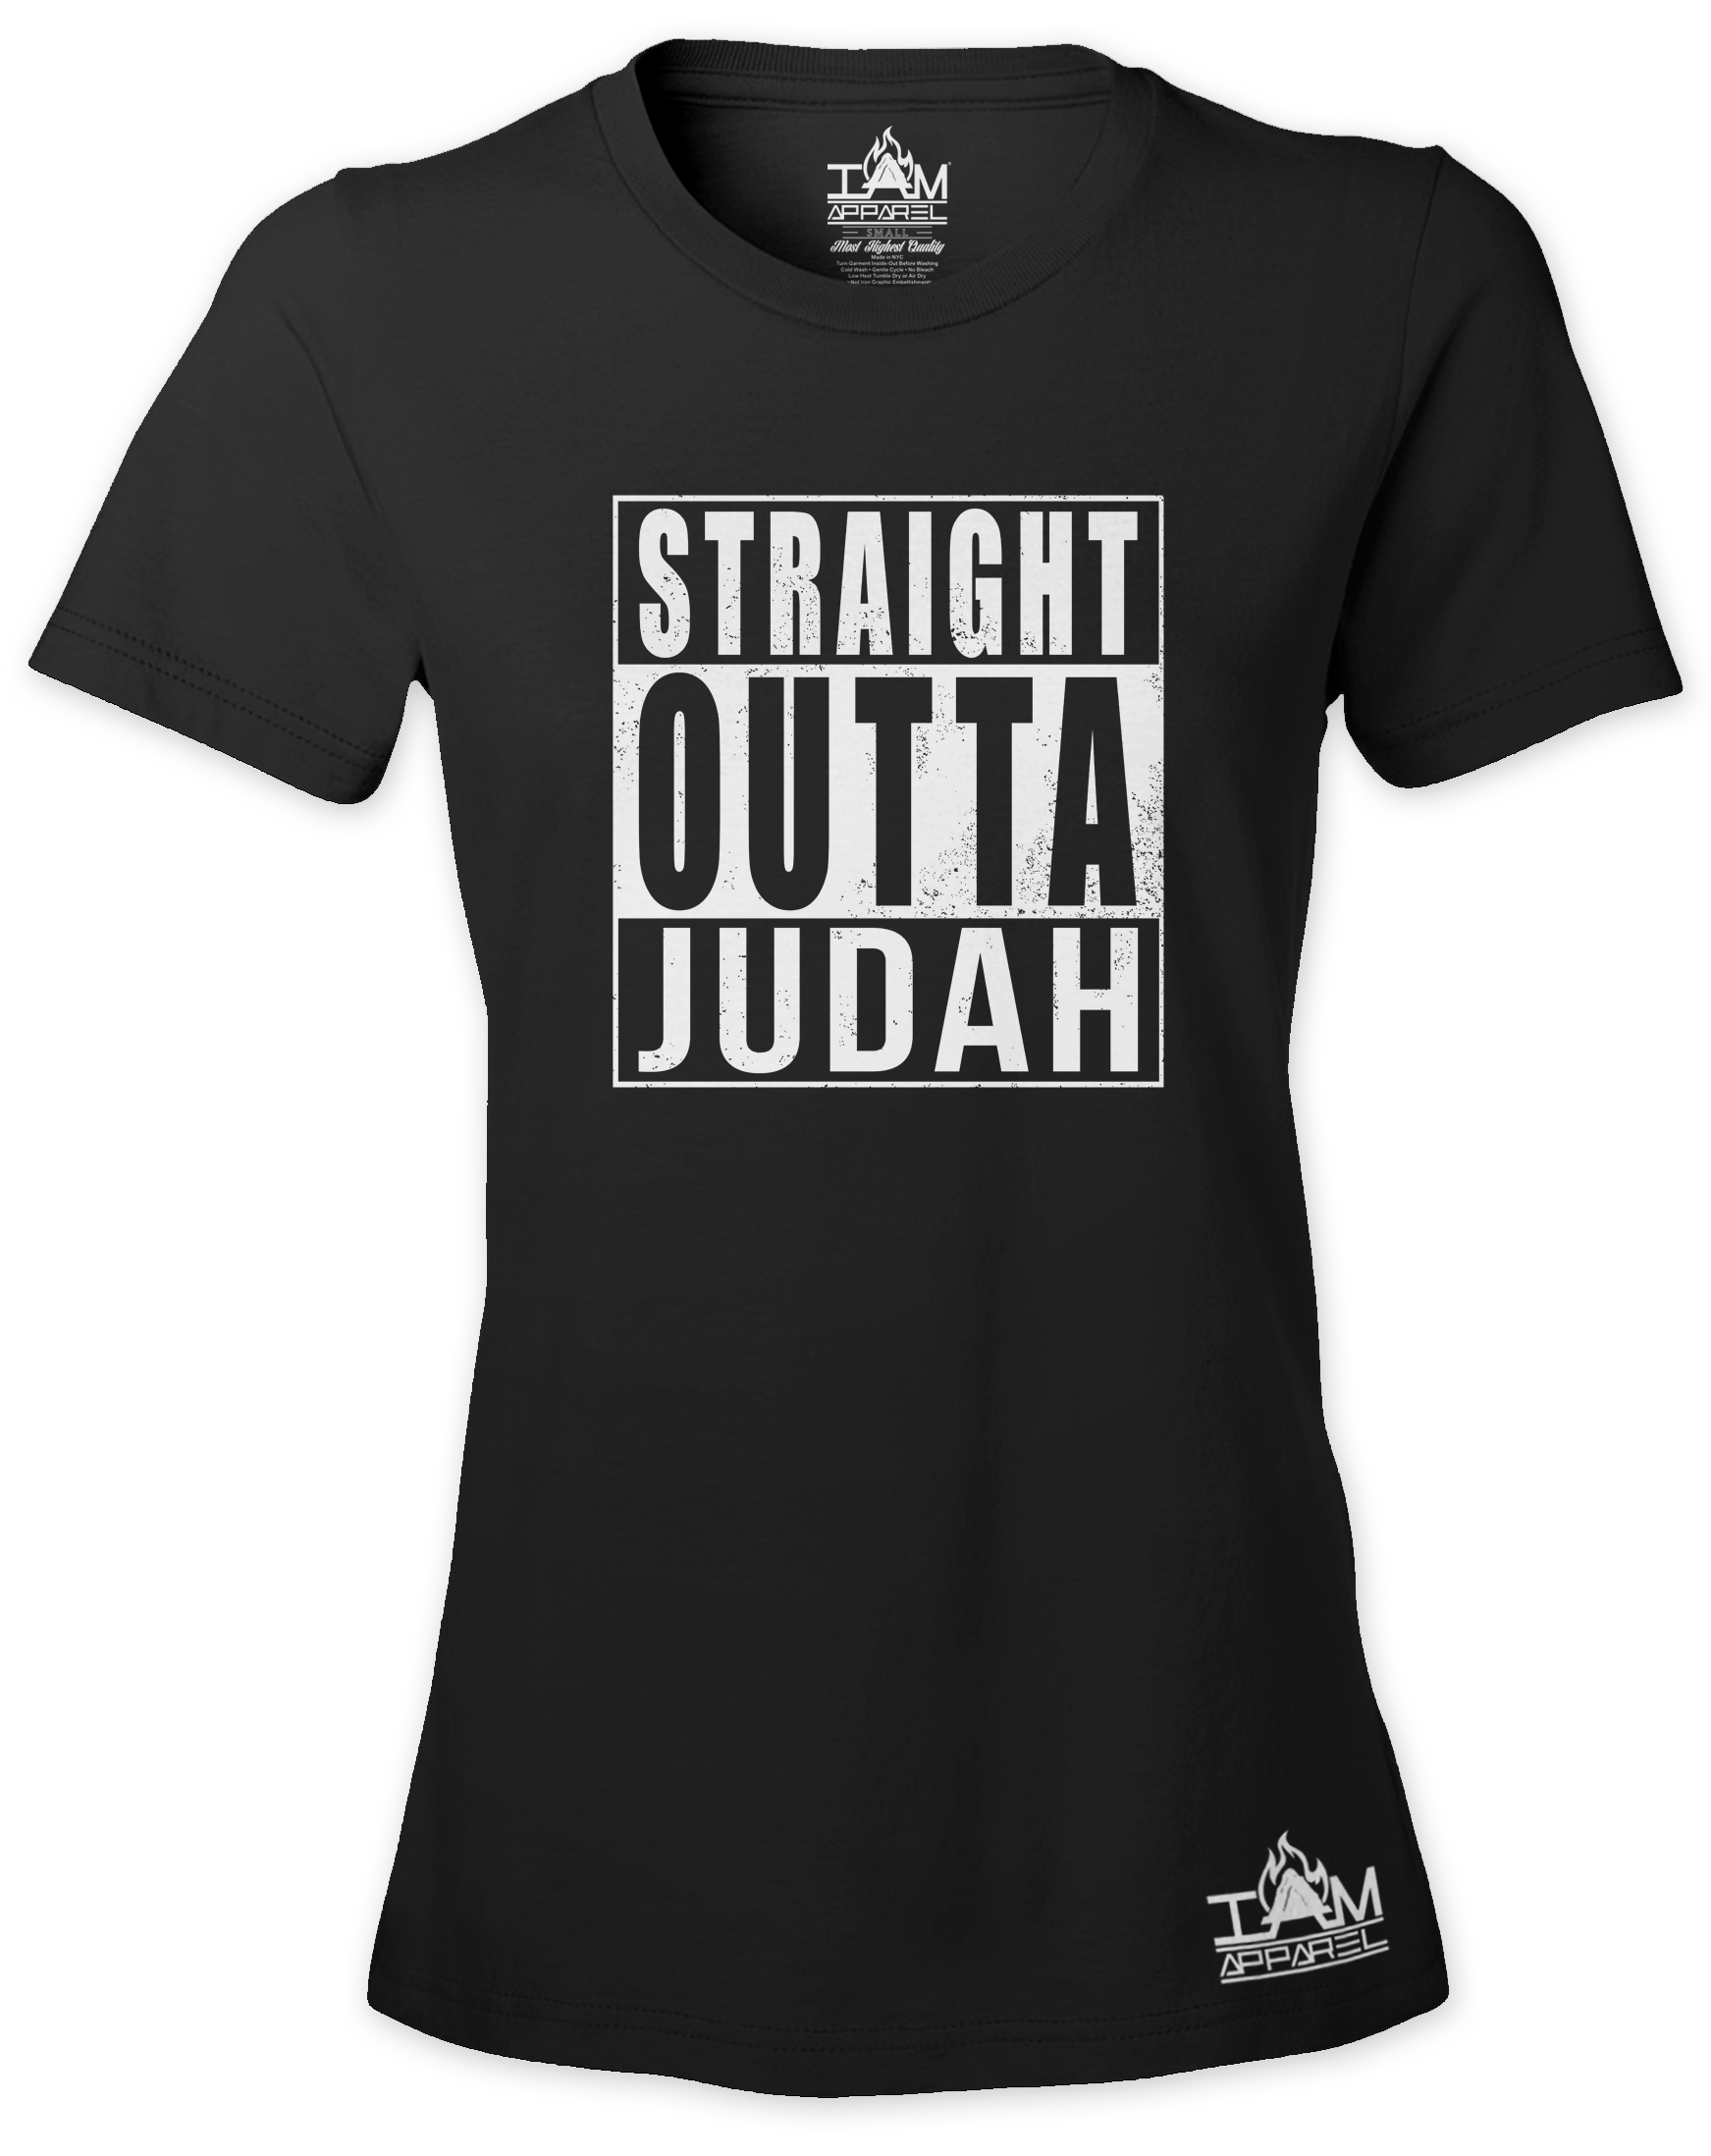 """Women's """"Straight Outta < TRIBE NAME > Short Sleeved T-shirt 00087"""